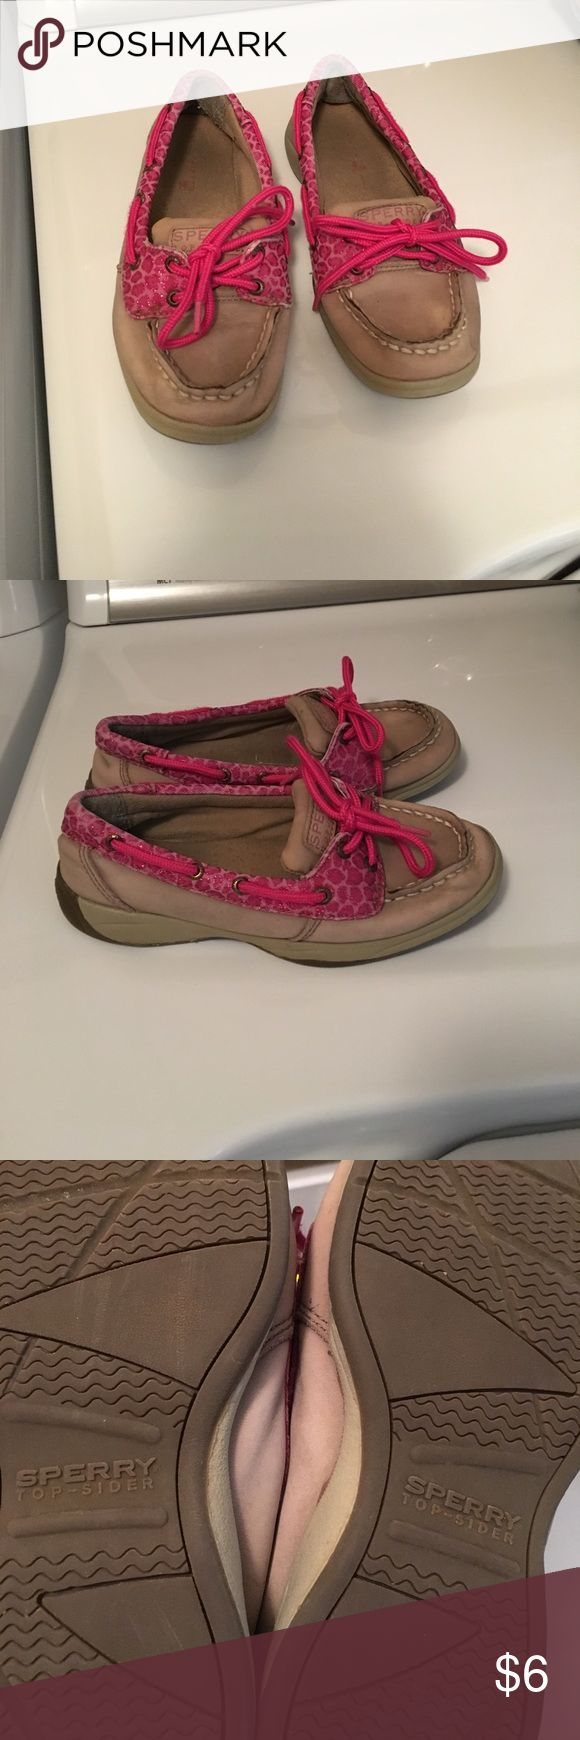 CLEAN OUT! Girls Sperry's Top Sider size 1 These have been well loved but still have a lot of life left for play, colors still look perfect. Pink zebra print. Smoke free and pet free home. Need everything gone before baby arrives:-) bundle and save!! Thanks! Sperry Top-Sider Shoes Sneakers